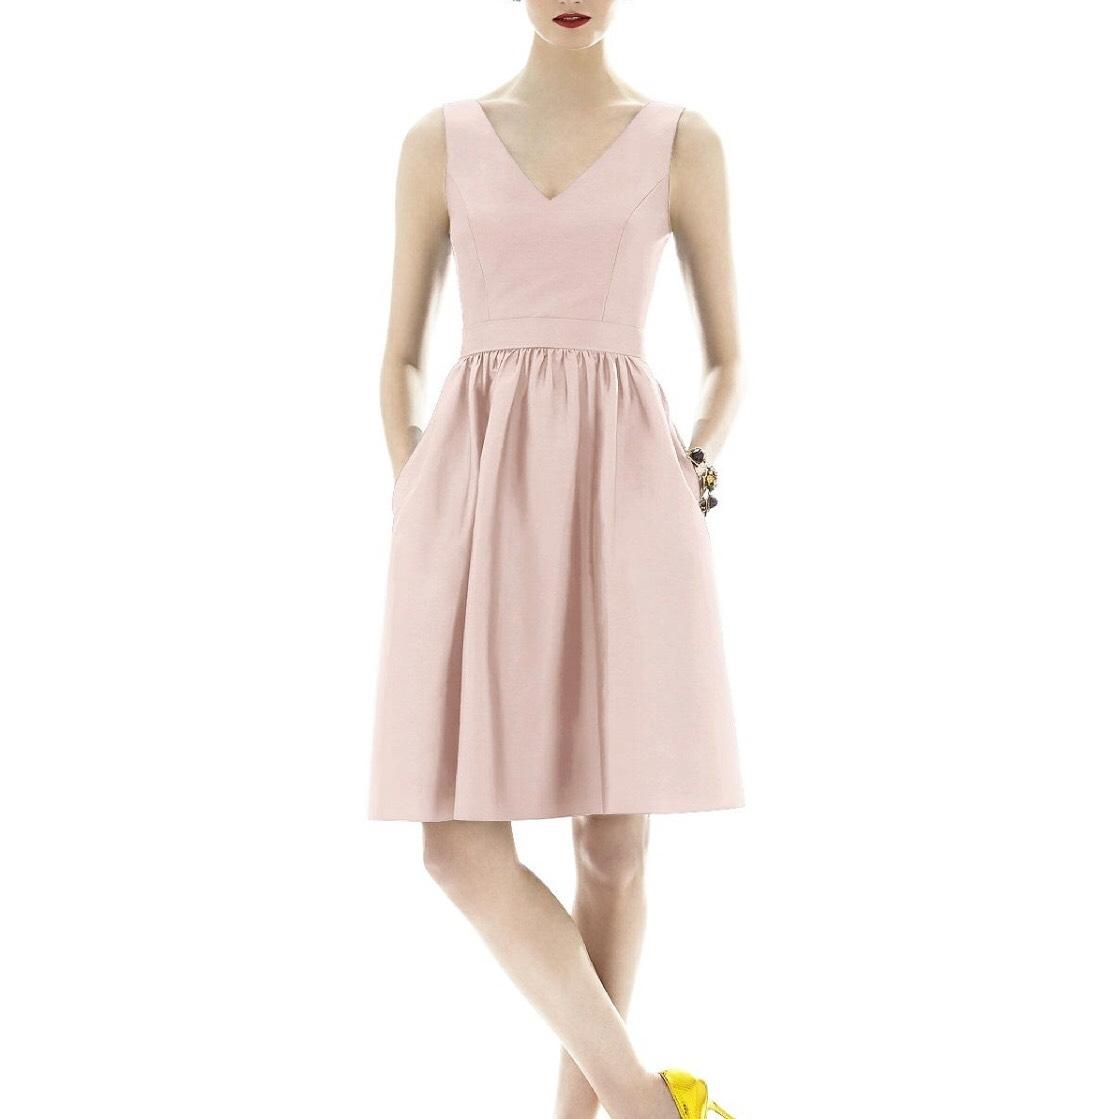 Beautiful My Skin Tone What Color Blush Is Alfred Sung Pearl Pink Light Pink Blush Color Silk Dupioni D638 Feminine Bridesmaidmob Dress Size 4 23230103 0 0 What Color Blush Is Medium Skin Tones photos What Color Is Blush